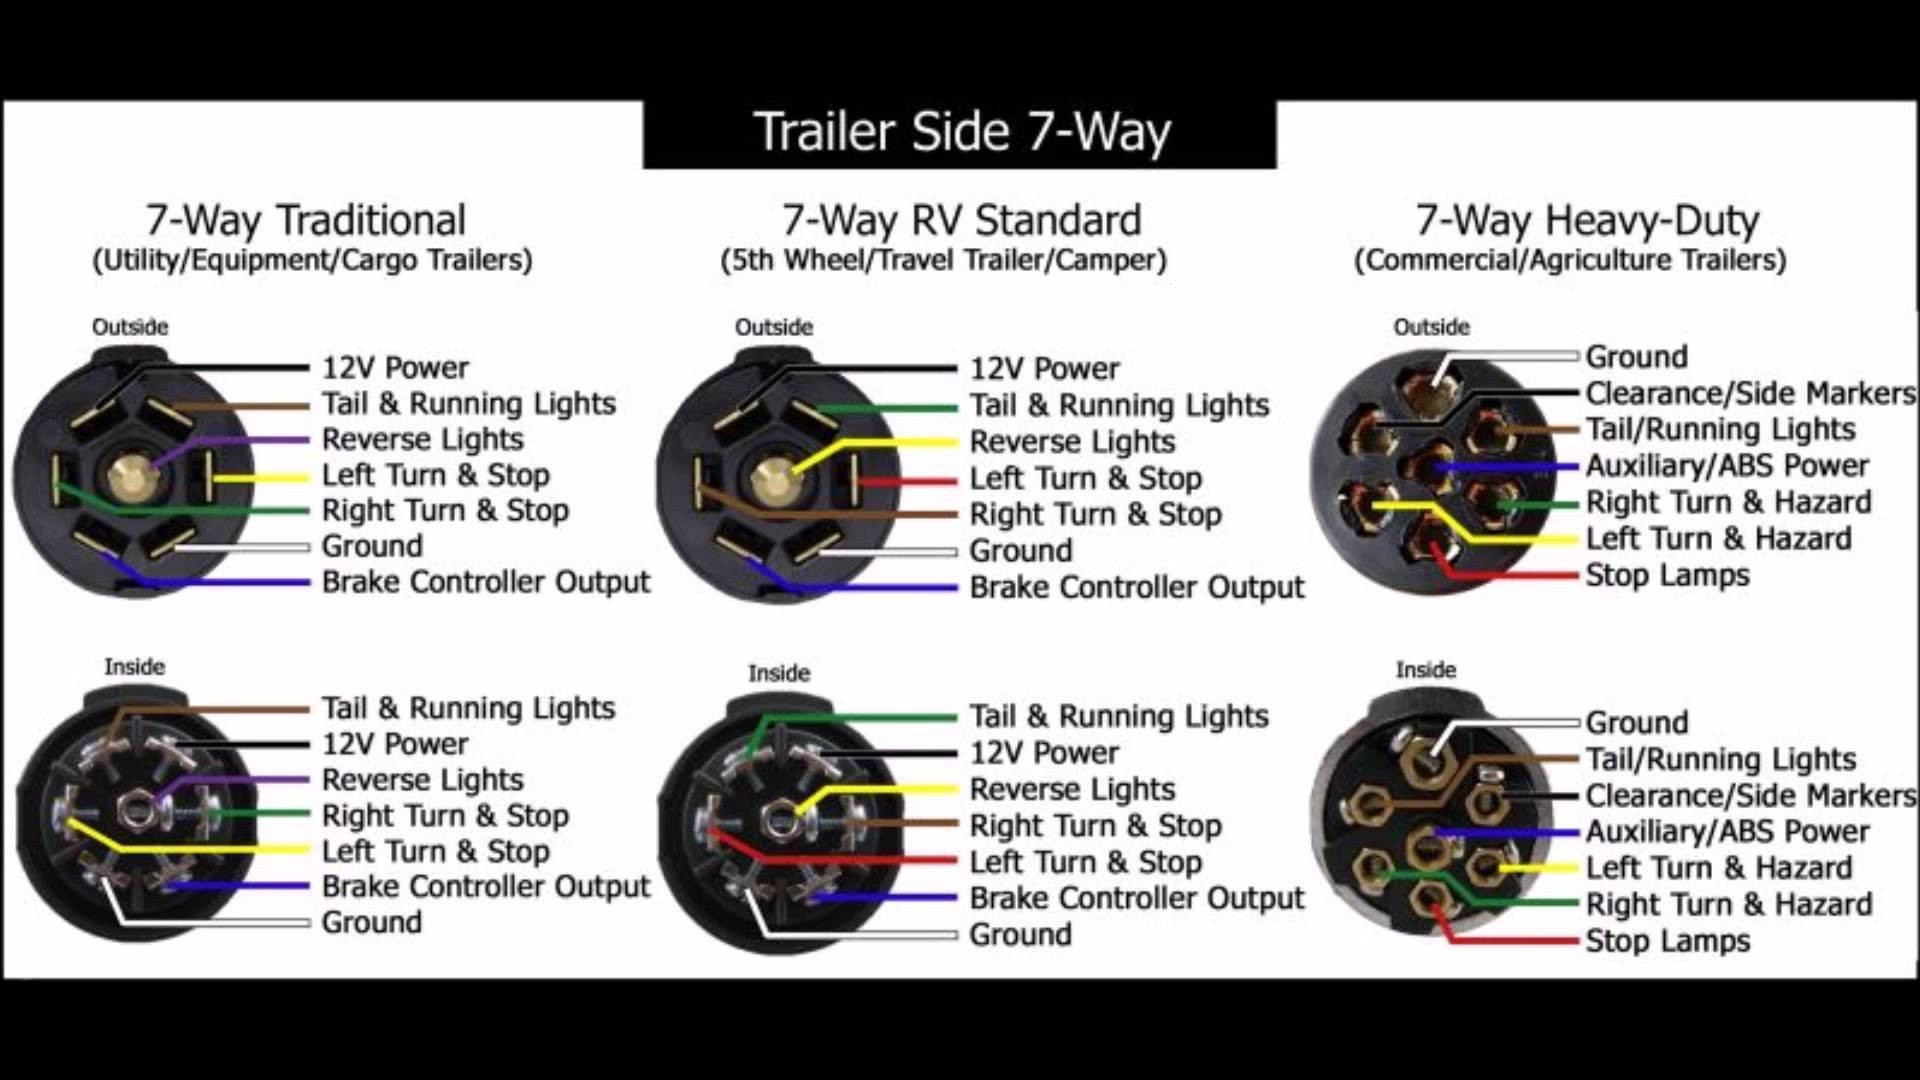 Swell Basic Semi Truck Trailer Wiring Diagram 2076 Within 7 Way Semi Wiring Cloud Filiciilluminateatxorg